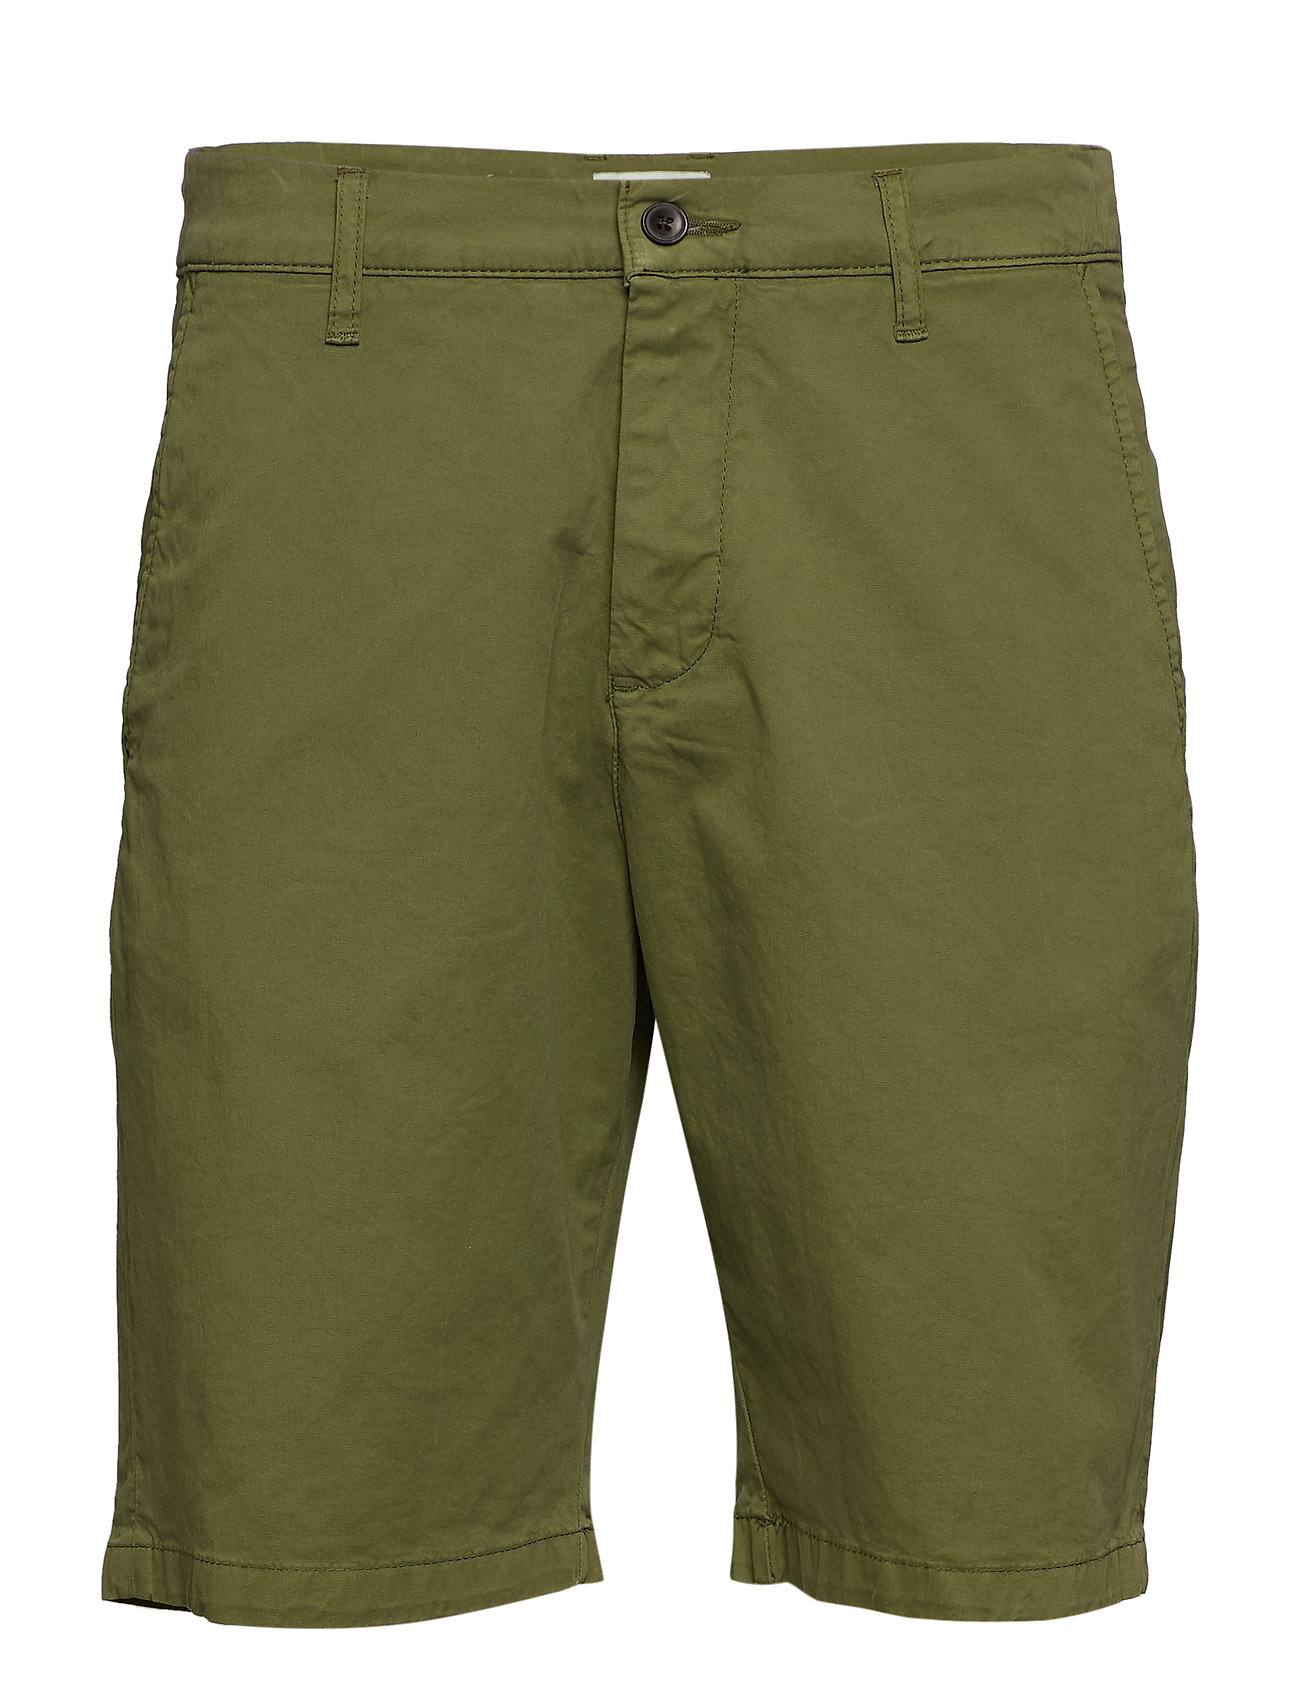 NN07 Crown Shorts 1004 - MOSS